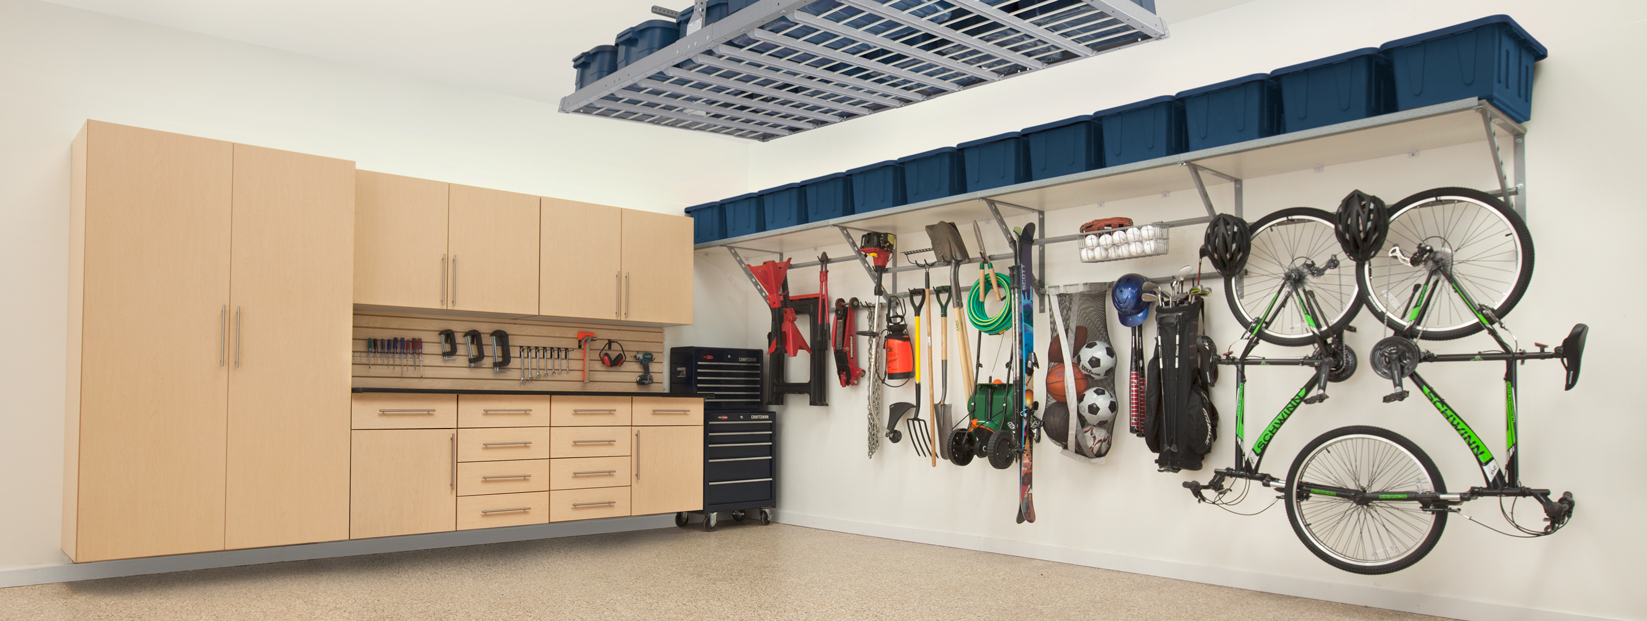 Garage Storage Palm Beach Gardens